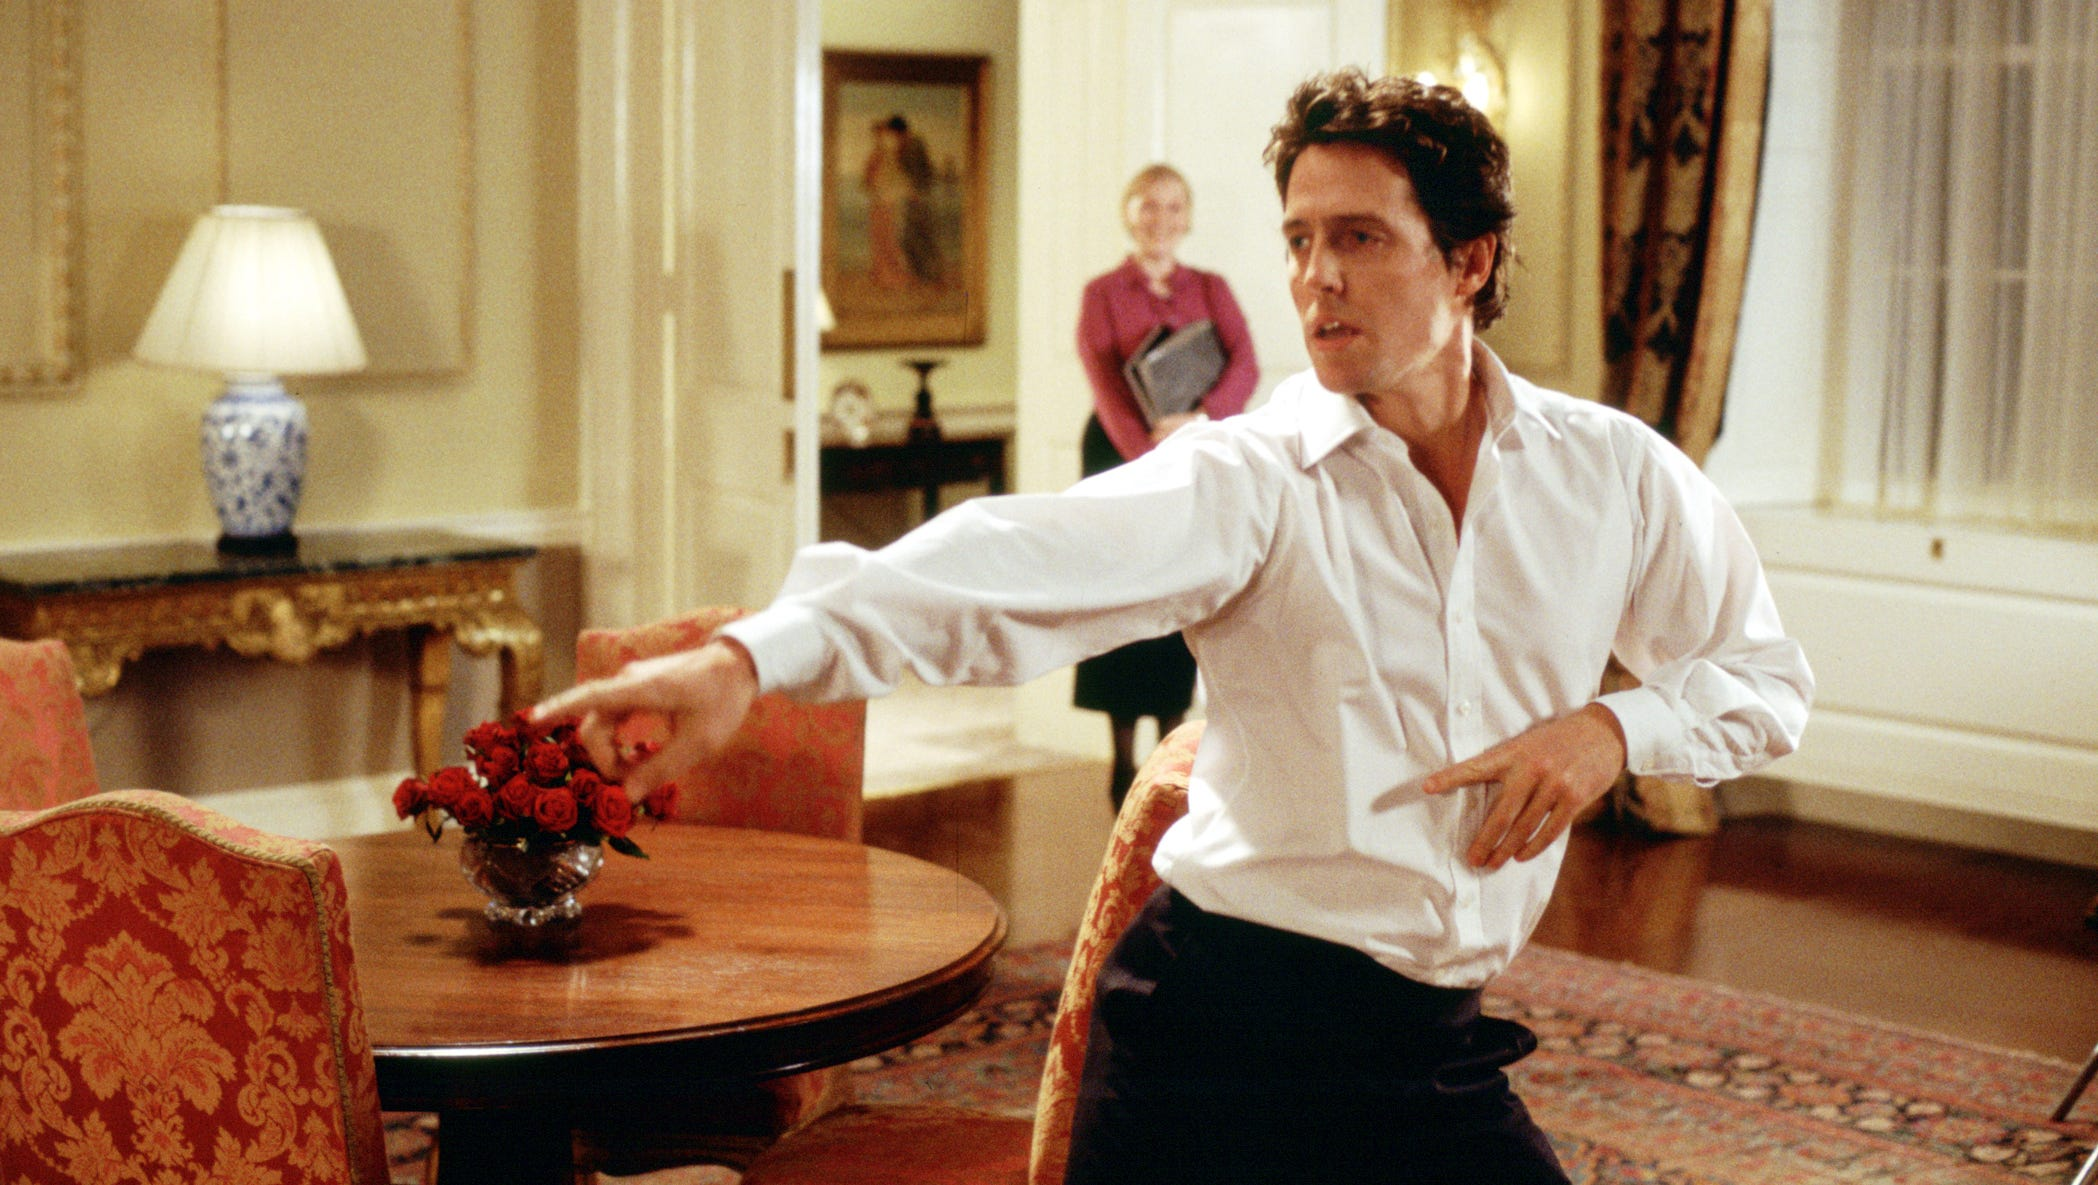 Love Actually' reunion: Hugh Grant dances to Drake, roasts Piers Morgan